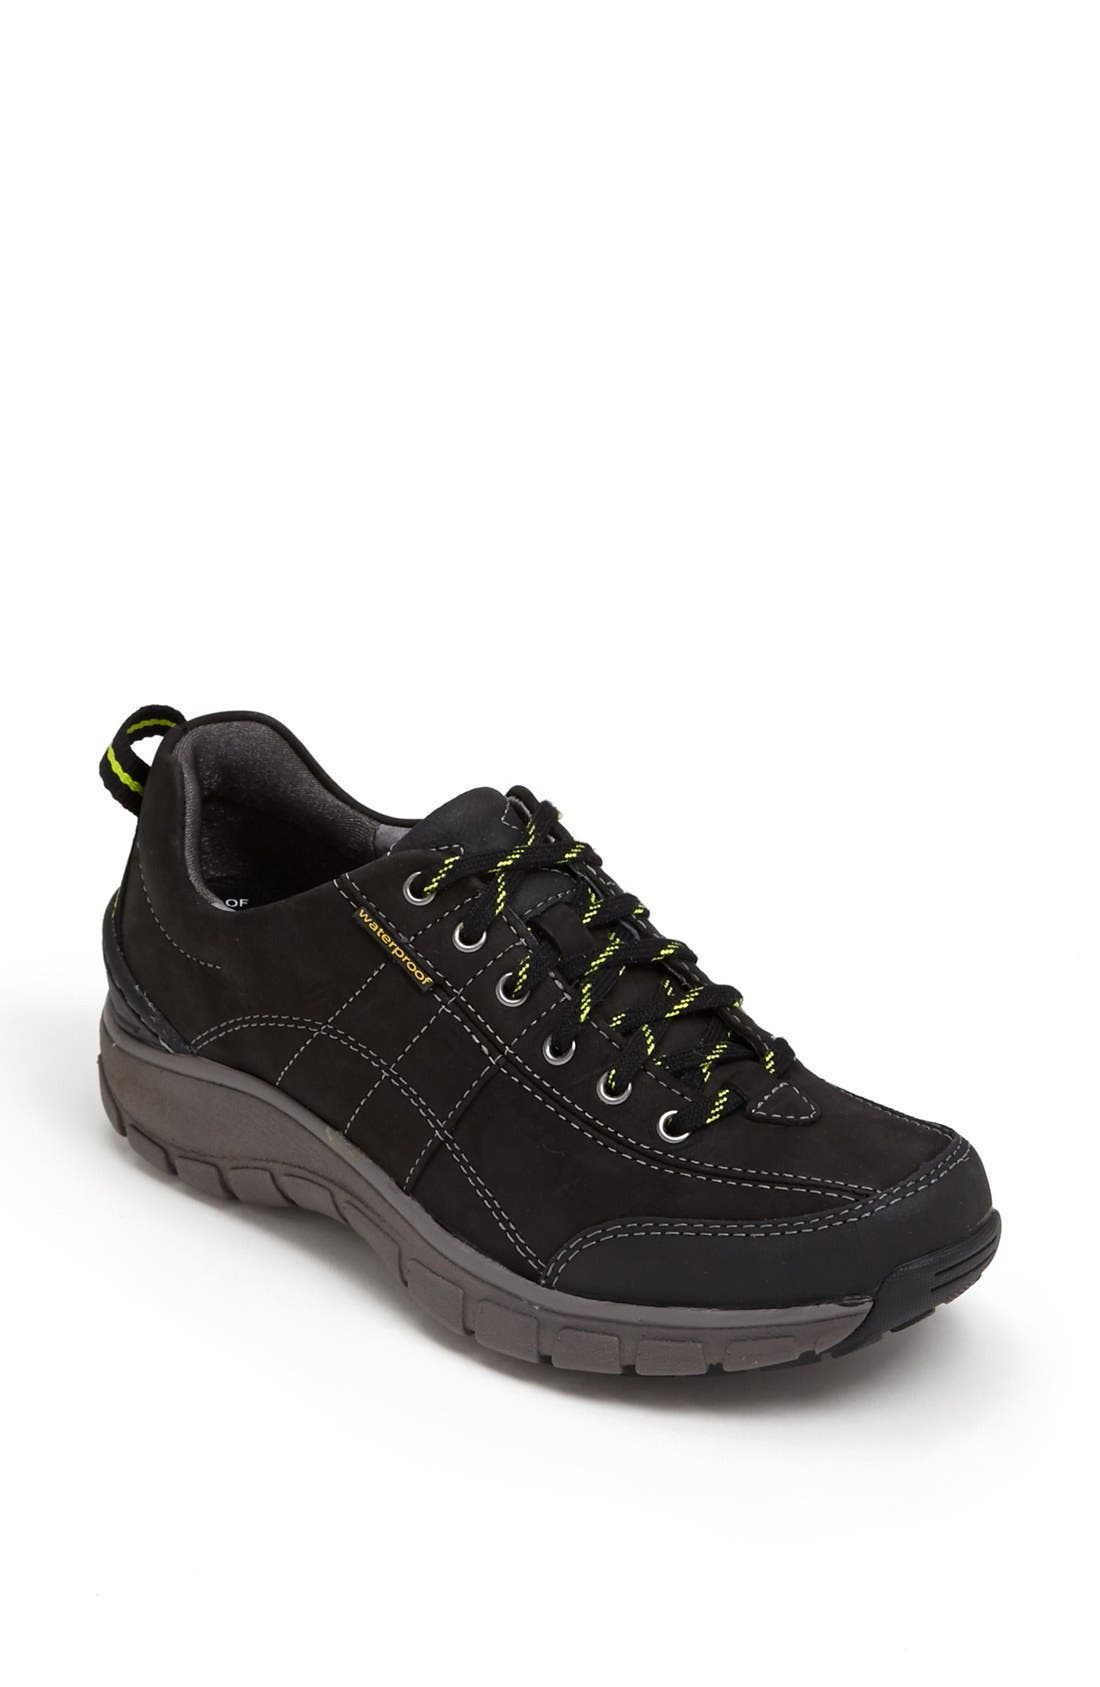 CLARKS<SUP>®</SUP> Wave Trek Waterproof Sneaker